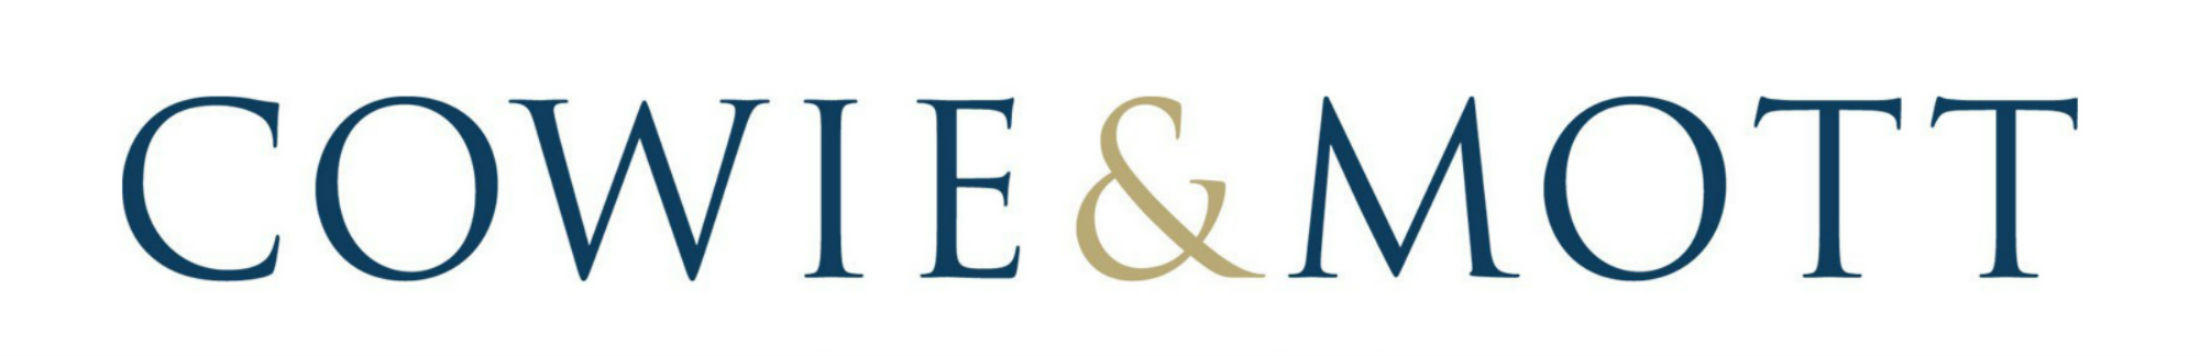 COWIE & MOTT – Maryland Construction Attorneys and Lawyers